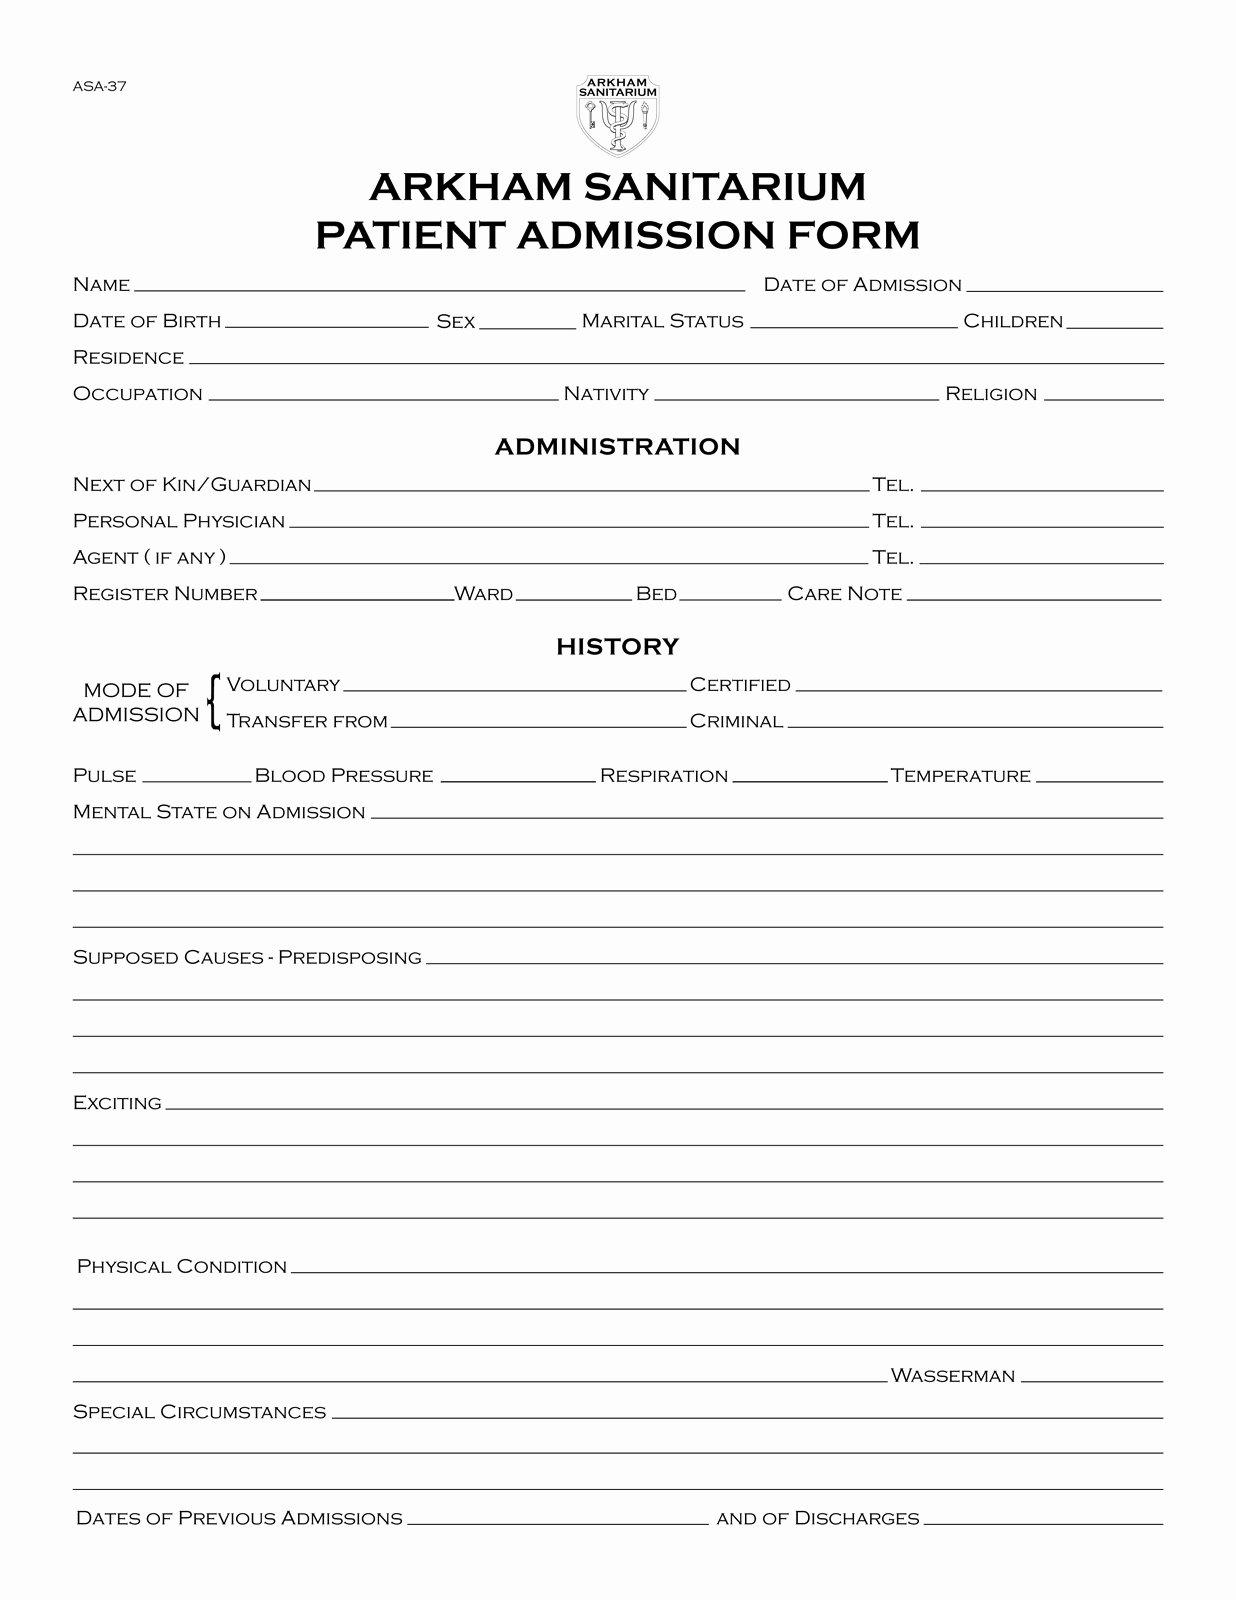 Fillable Hospital Discharge Papers New Propnomicon Arkham Sanitarium Patient Admission form